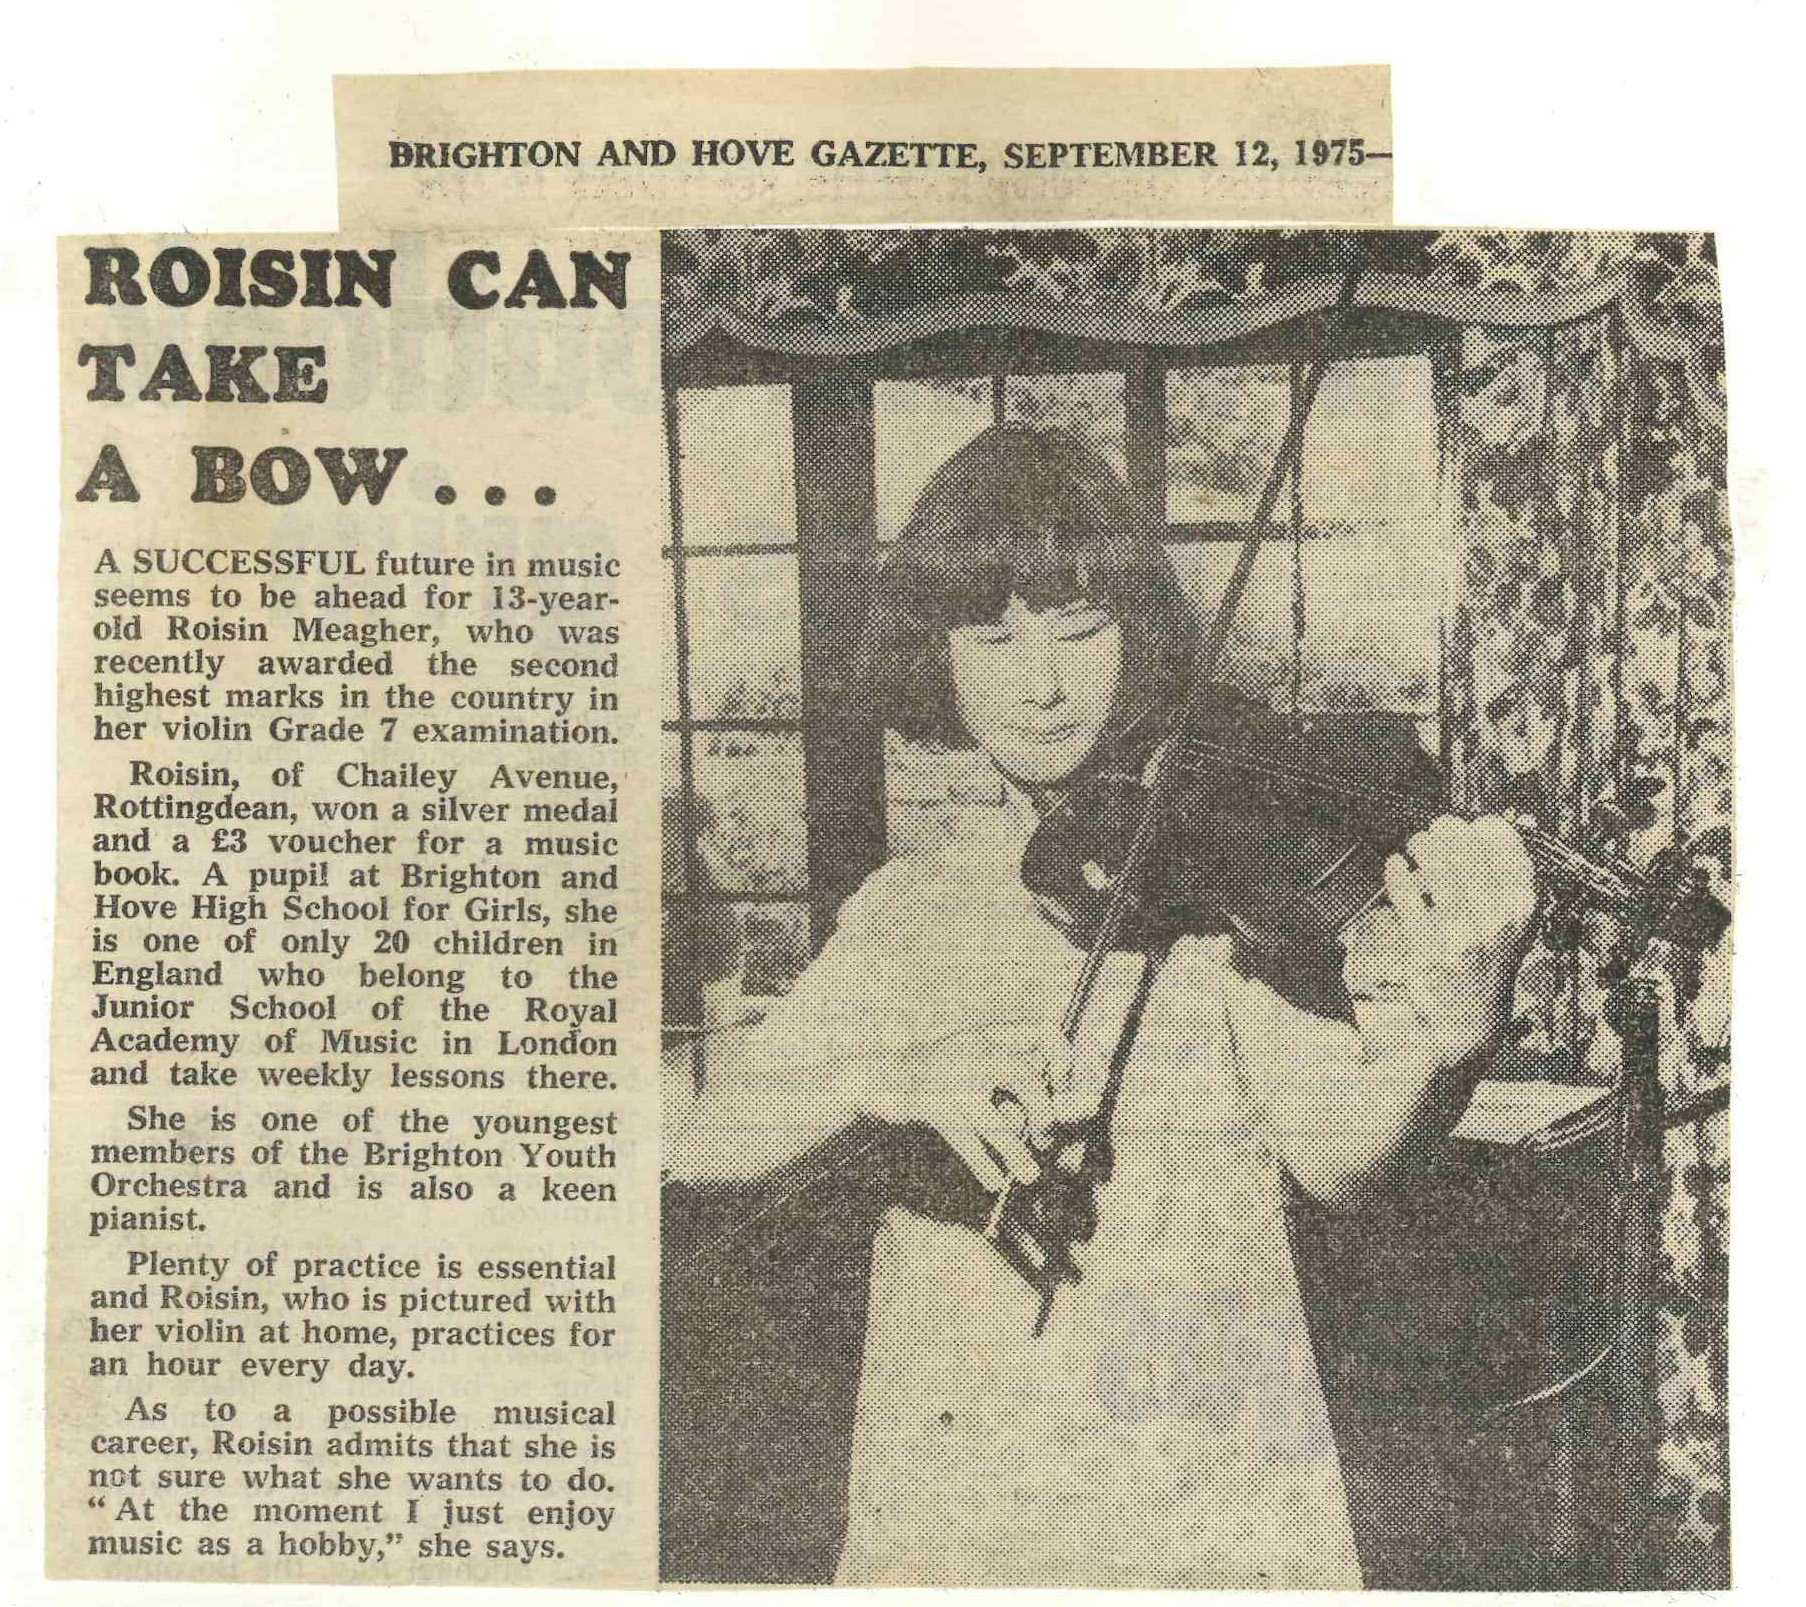 00013-Brighton and Hove Gazette, 12th September 1975.jpg